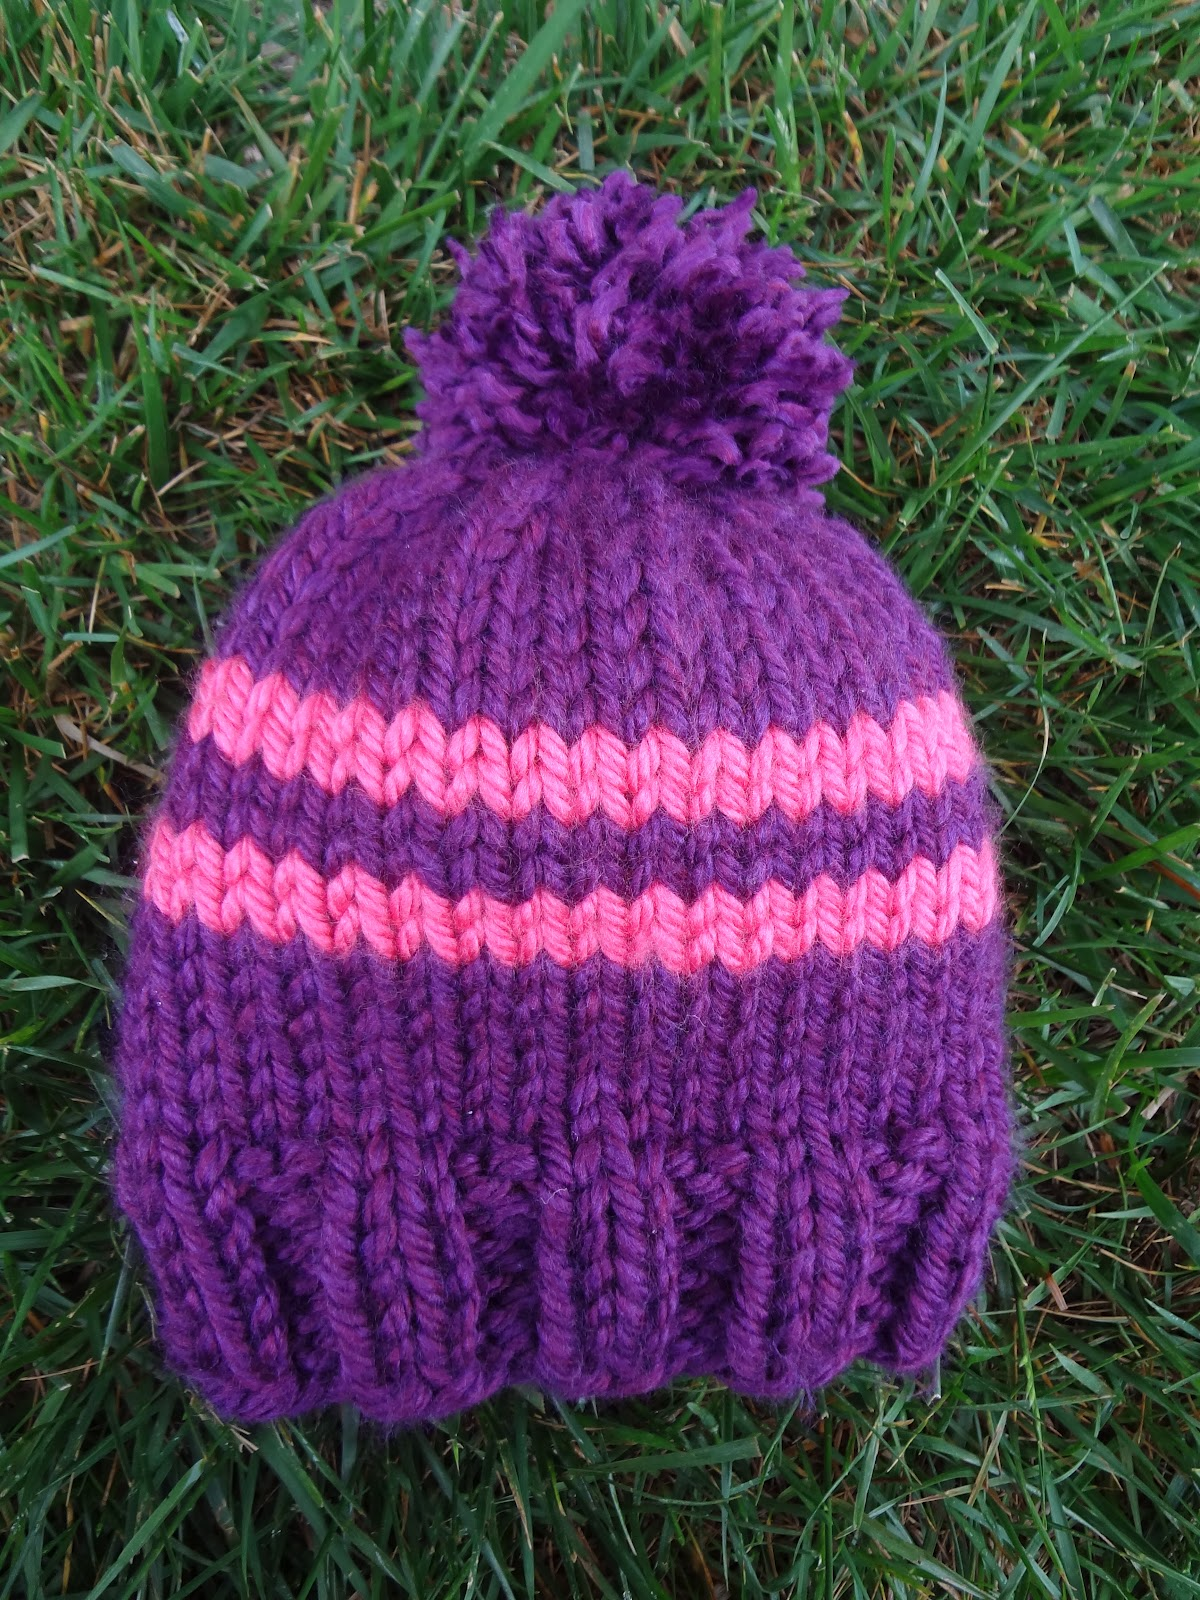 Knitting Patterns For Childrens Hats Free : Fiber Flux: Free Knitting Pattern! Preschooler Rugby Hat